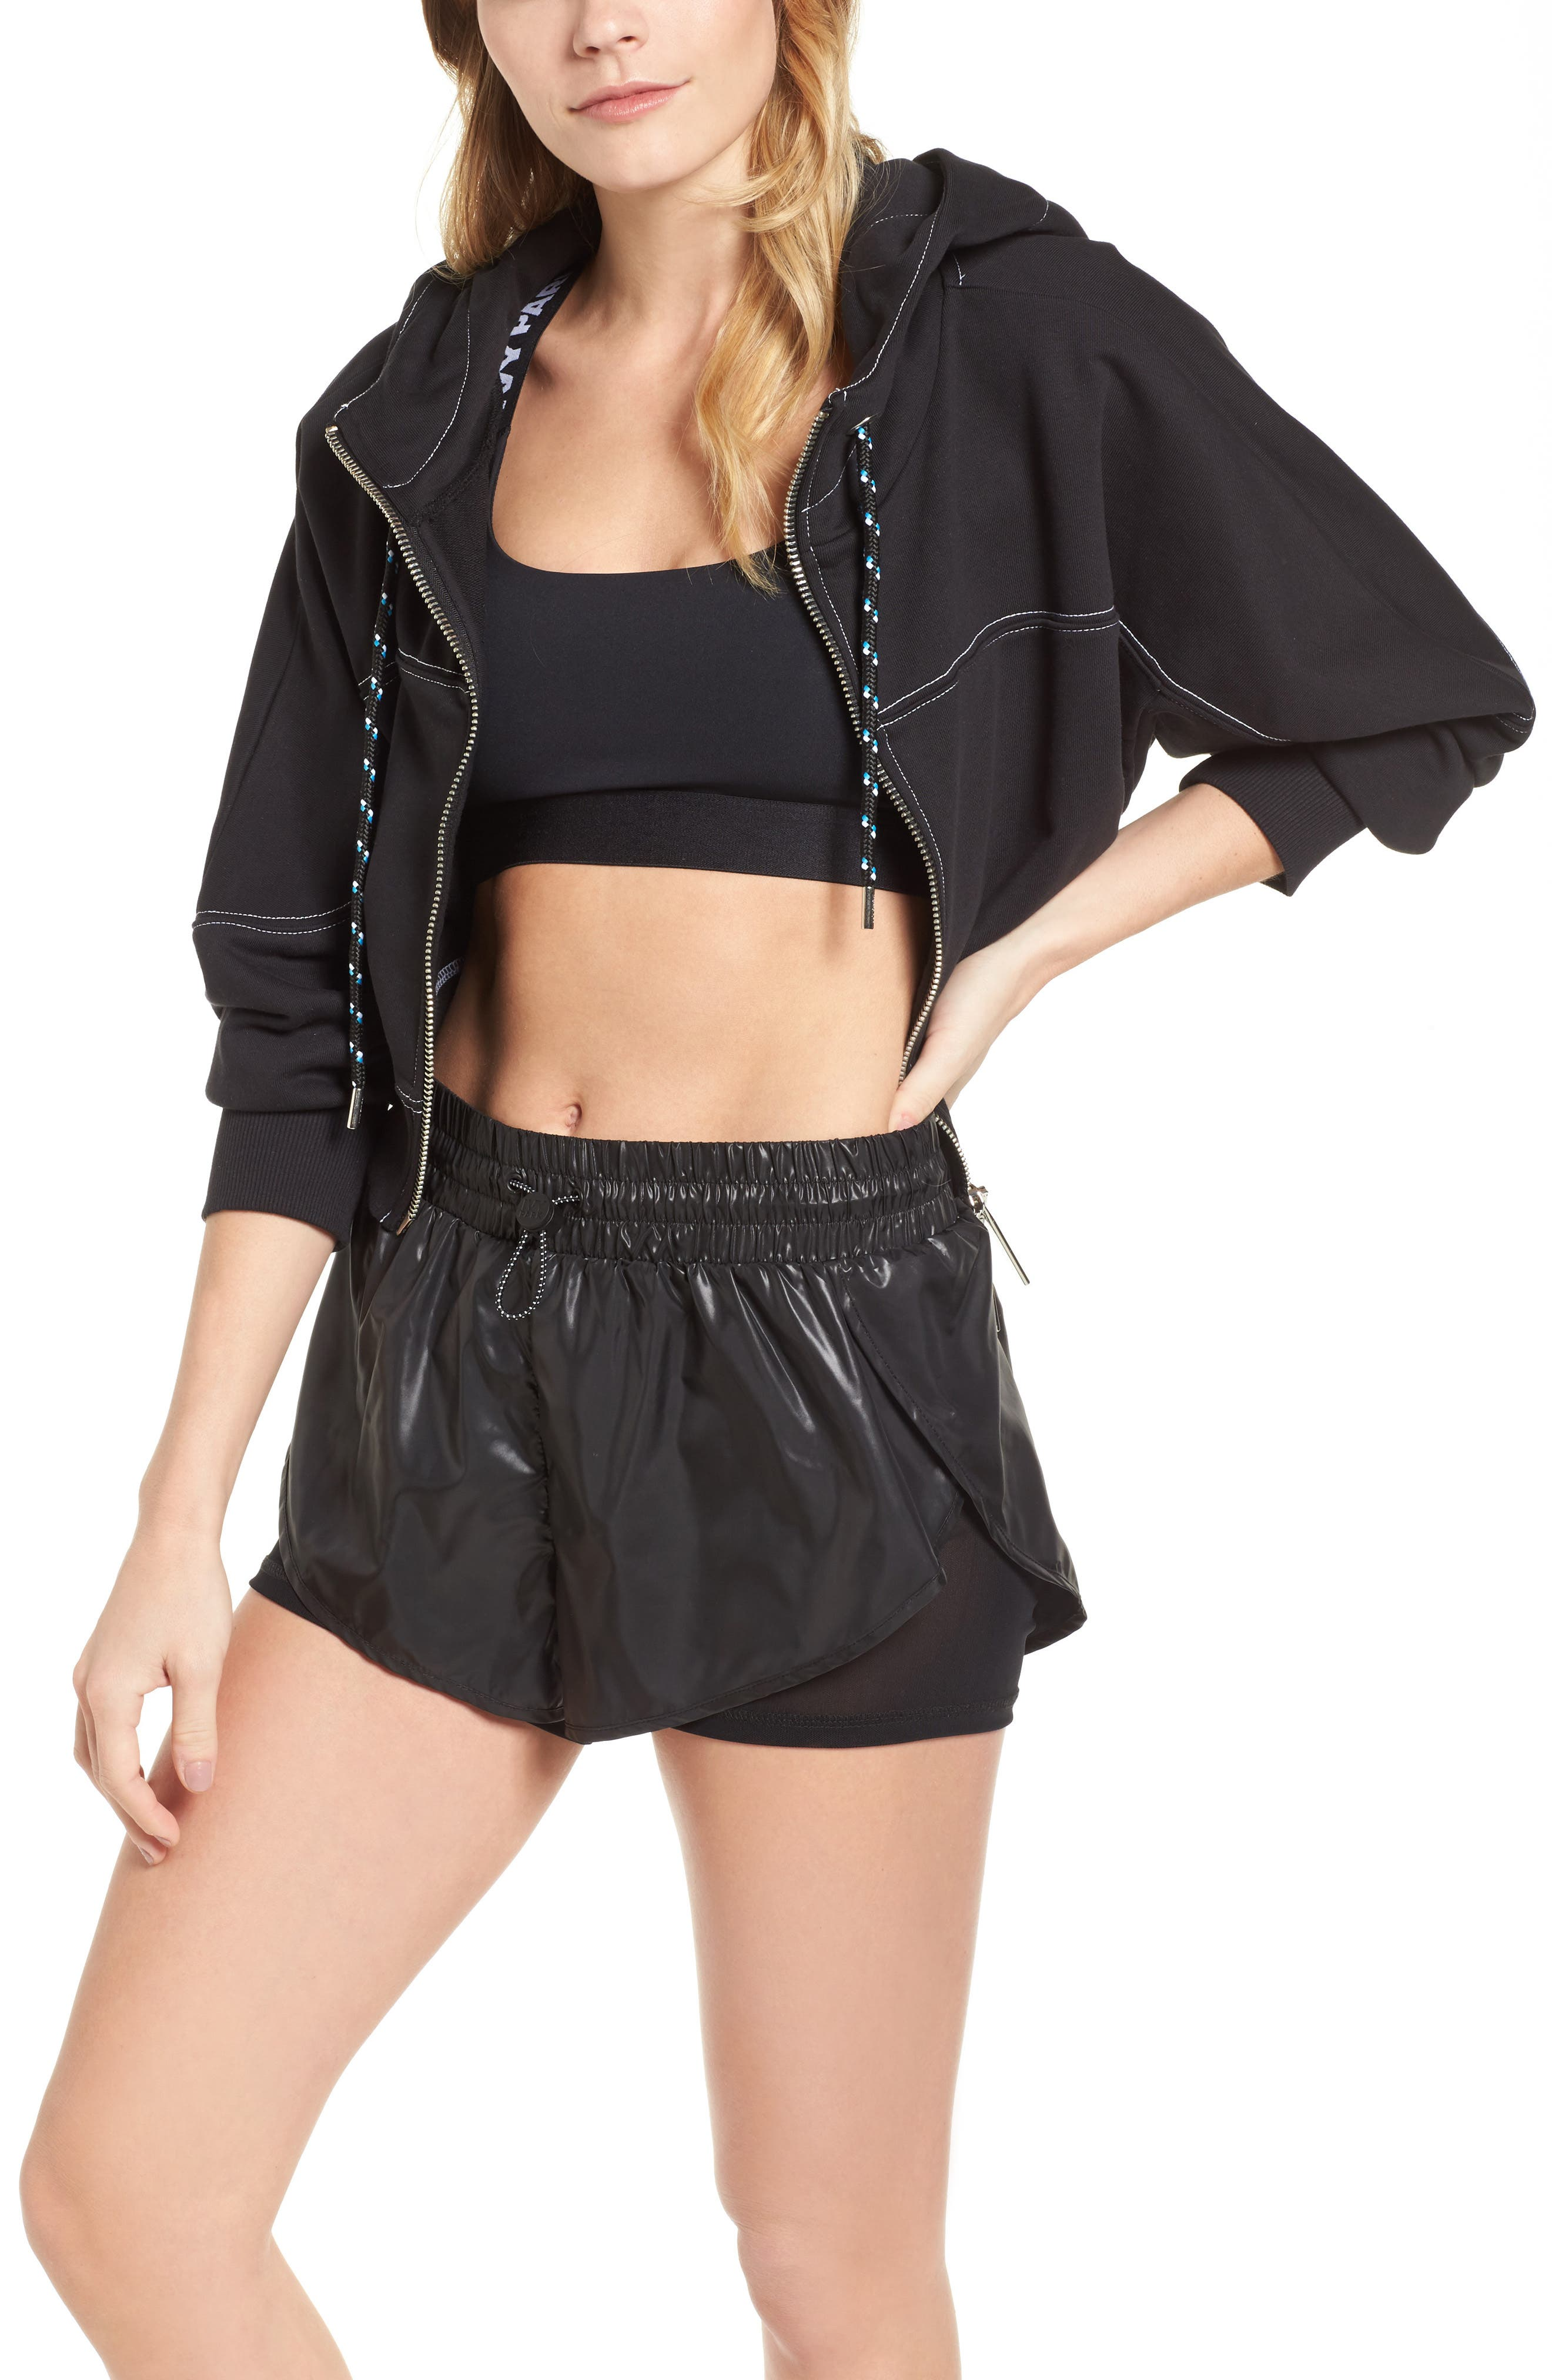 Alternate Image 1 Selected - IVY PARK® Lace-Up Back Zip Through Hoodie